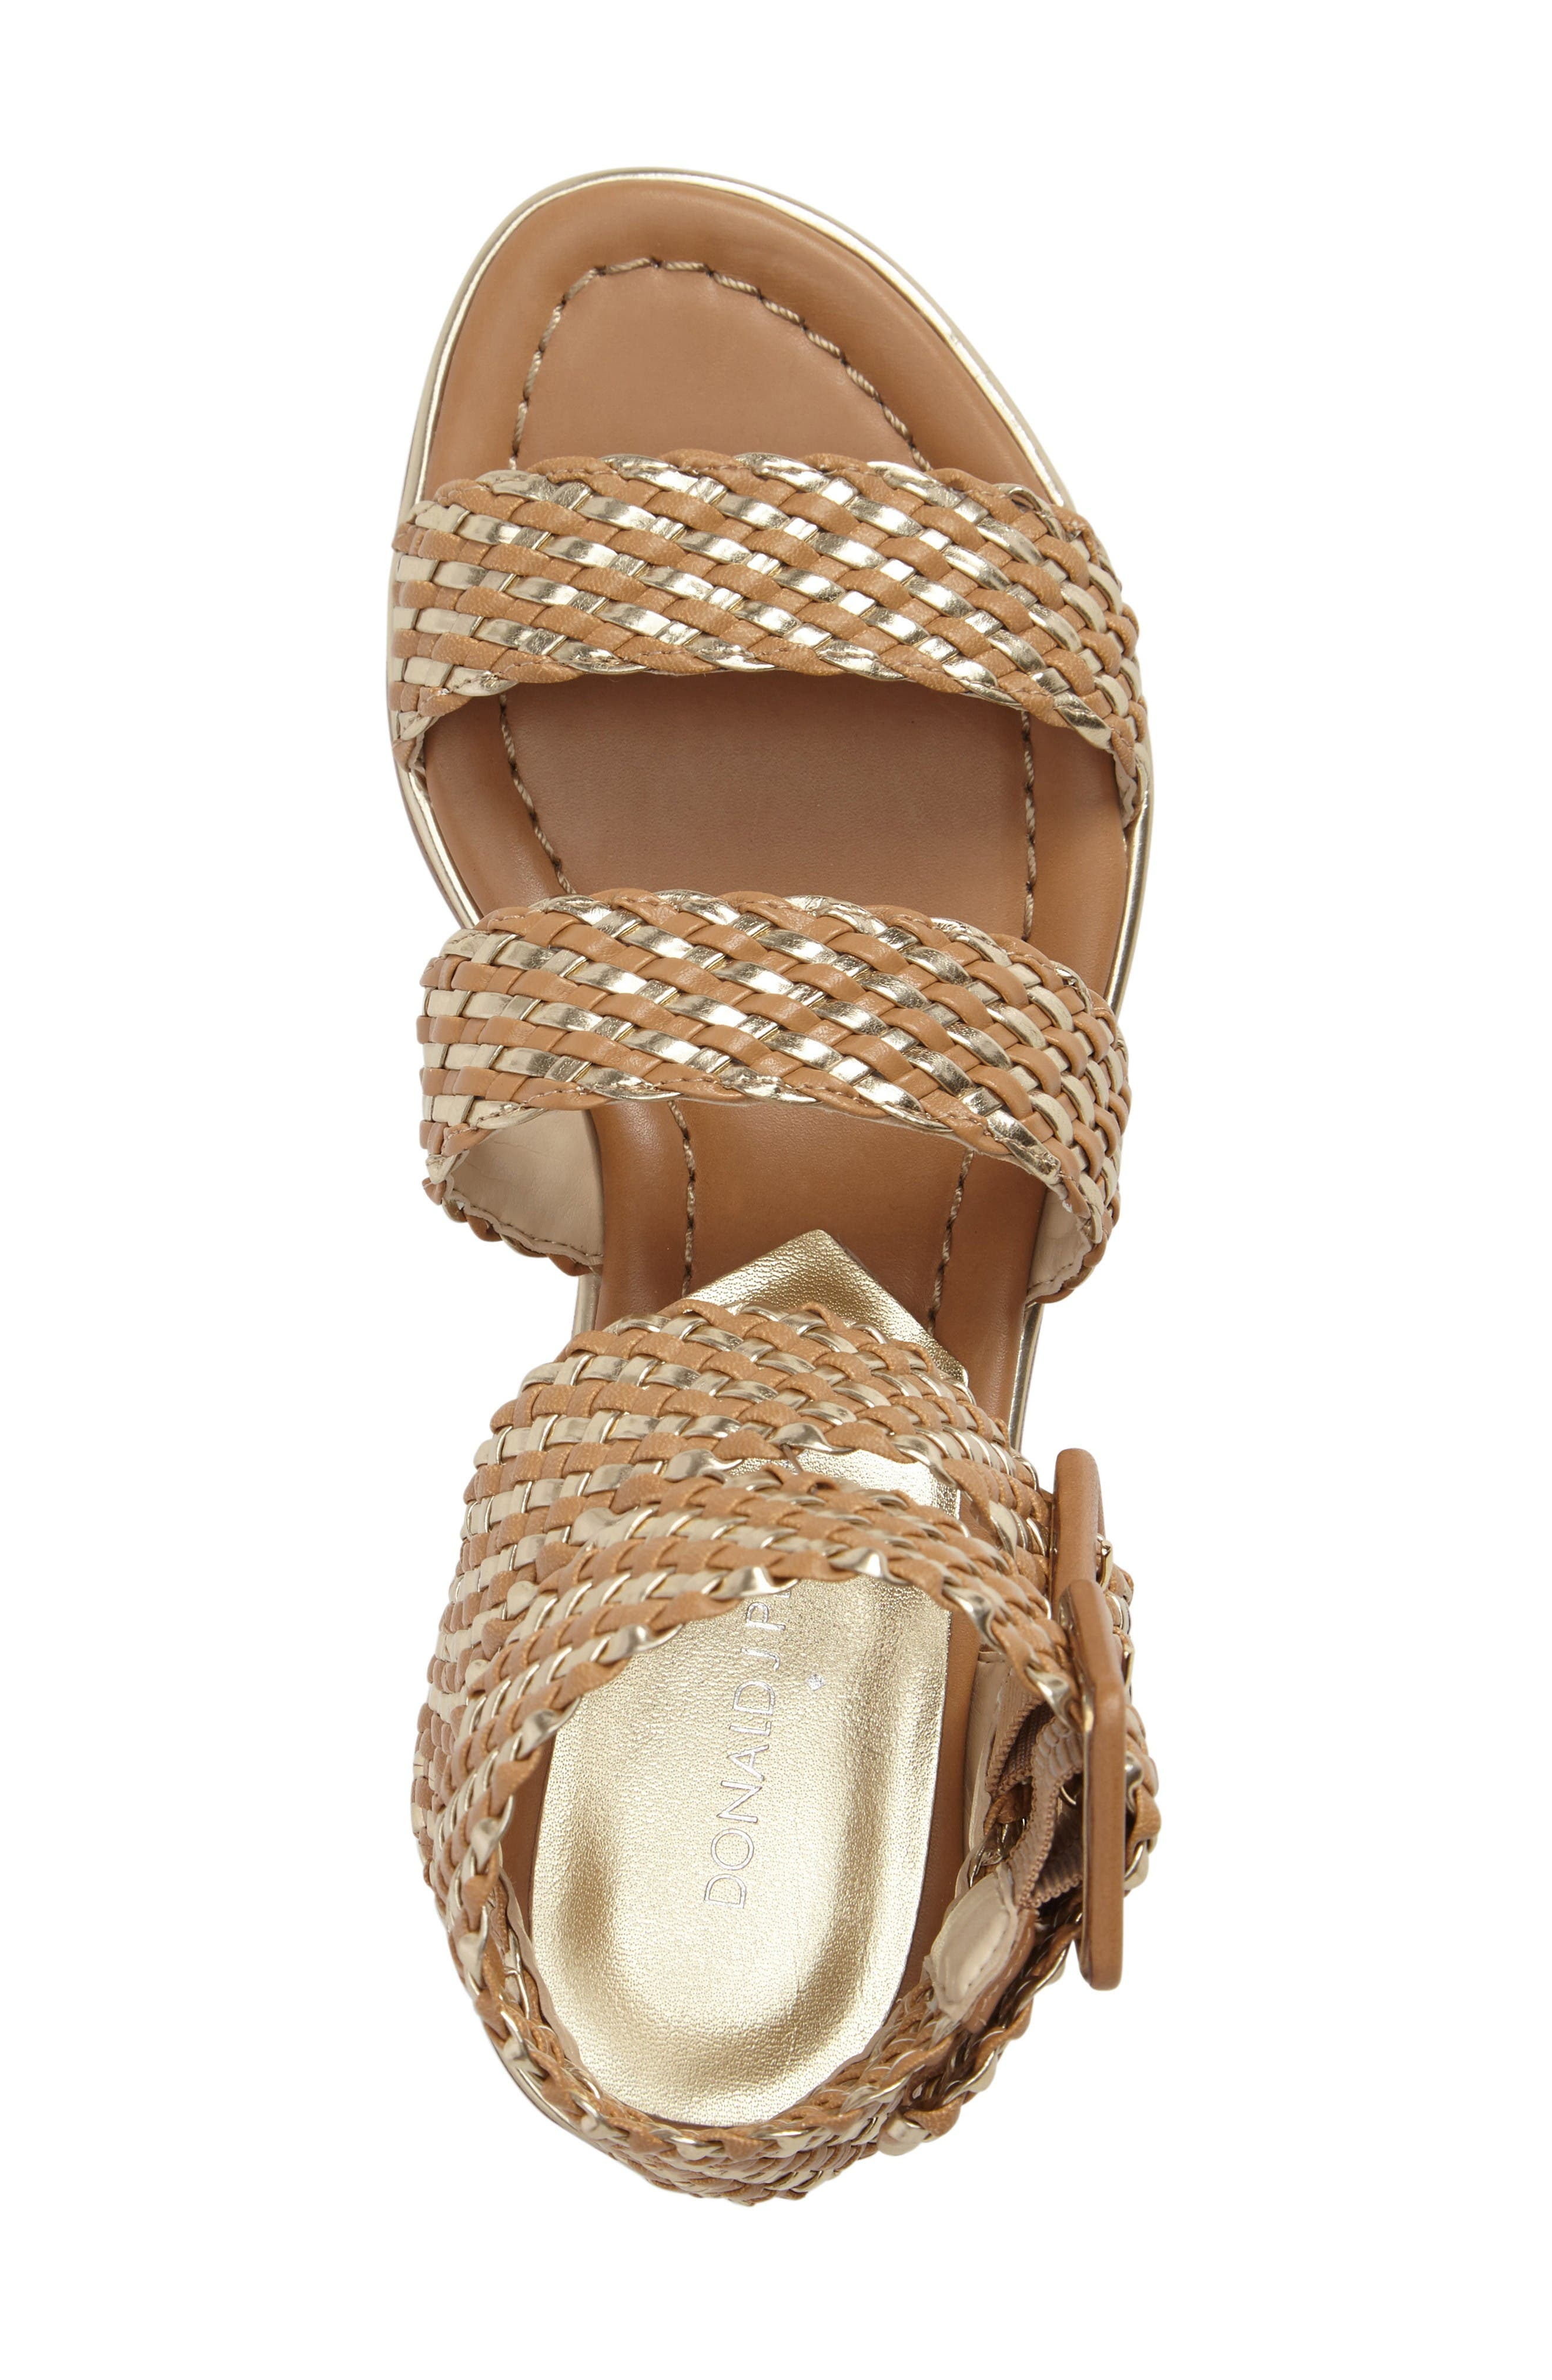 Donald J Pliner Lucia Braided Sandal,                             Alternate thumbnail 5, color,                             Sand/ Platino Faux Leather